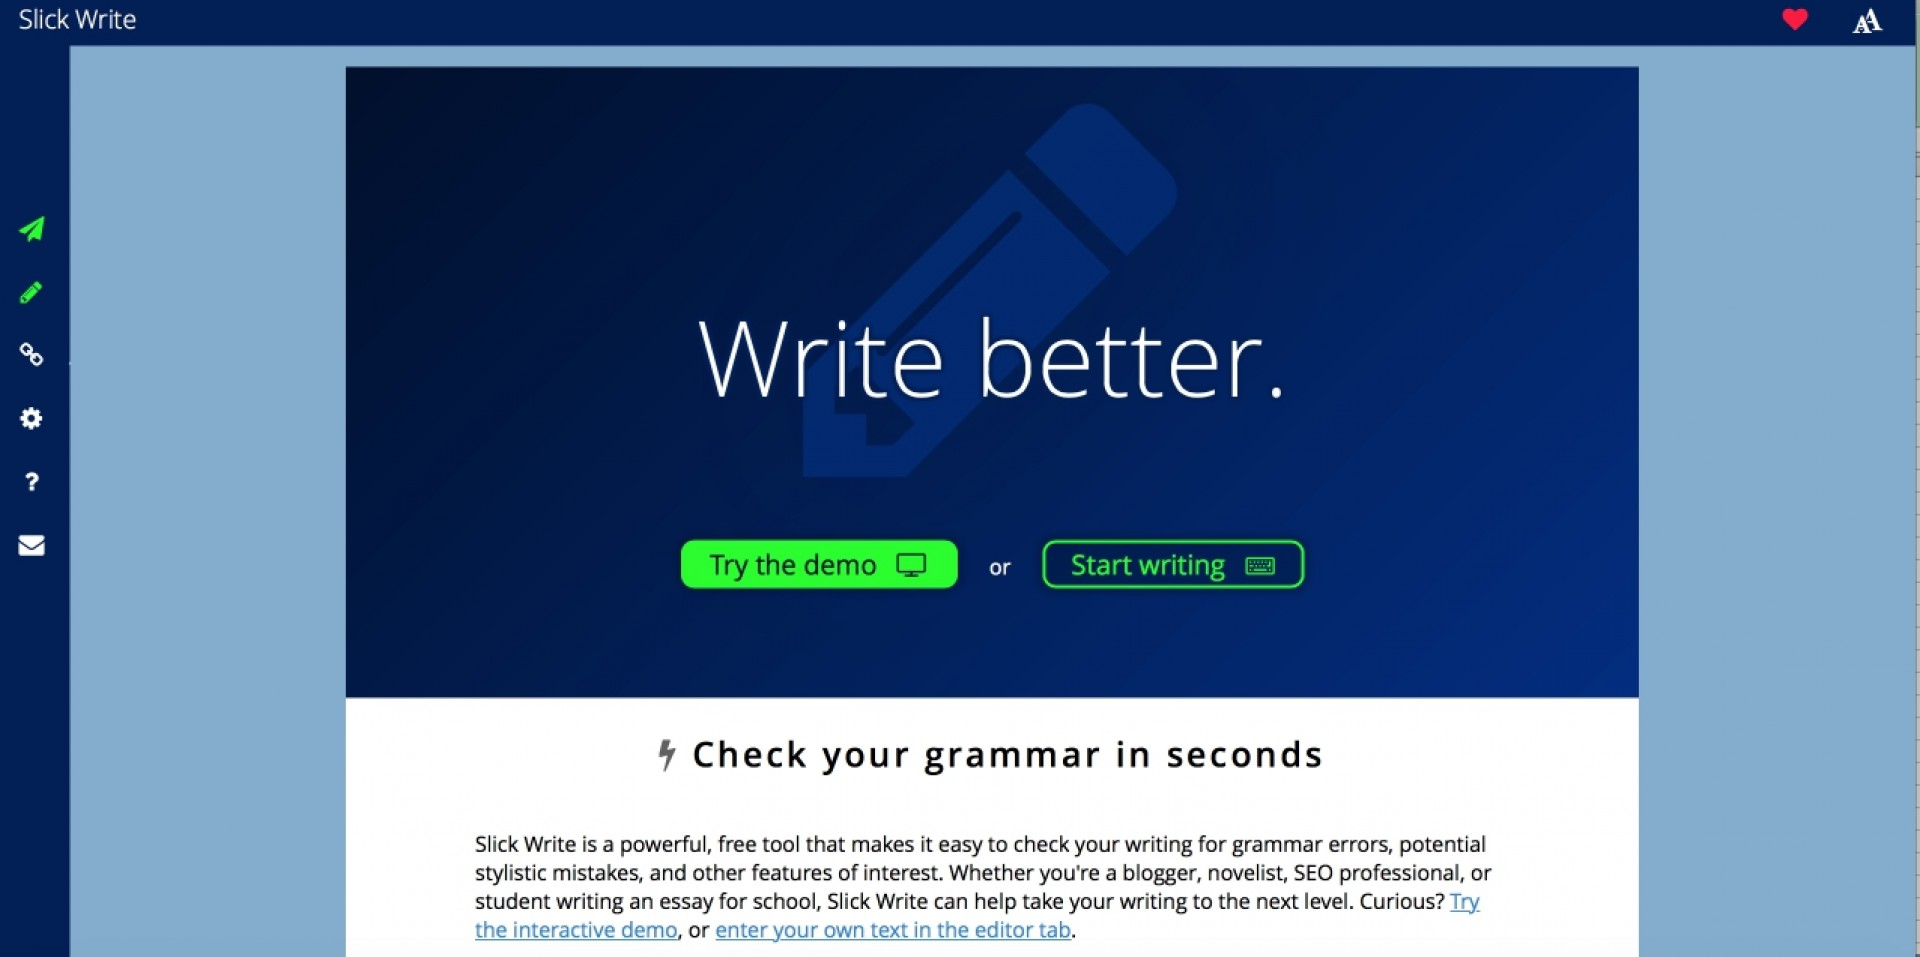 014 Essay Example Editor Slick Write Editing Tool 1493980502 Marvelous Paper Jobs Reddit Freelance 1920